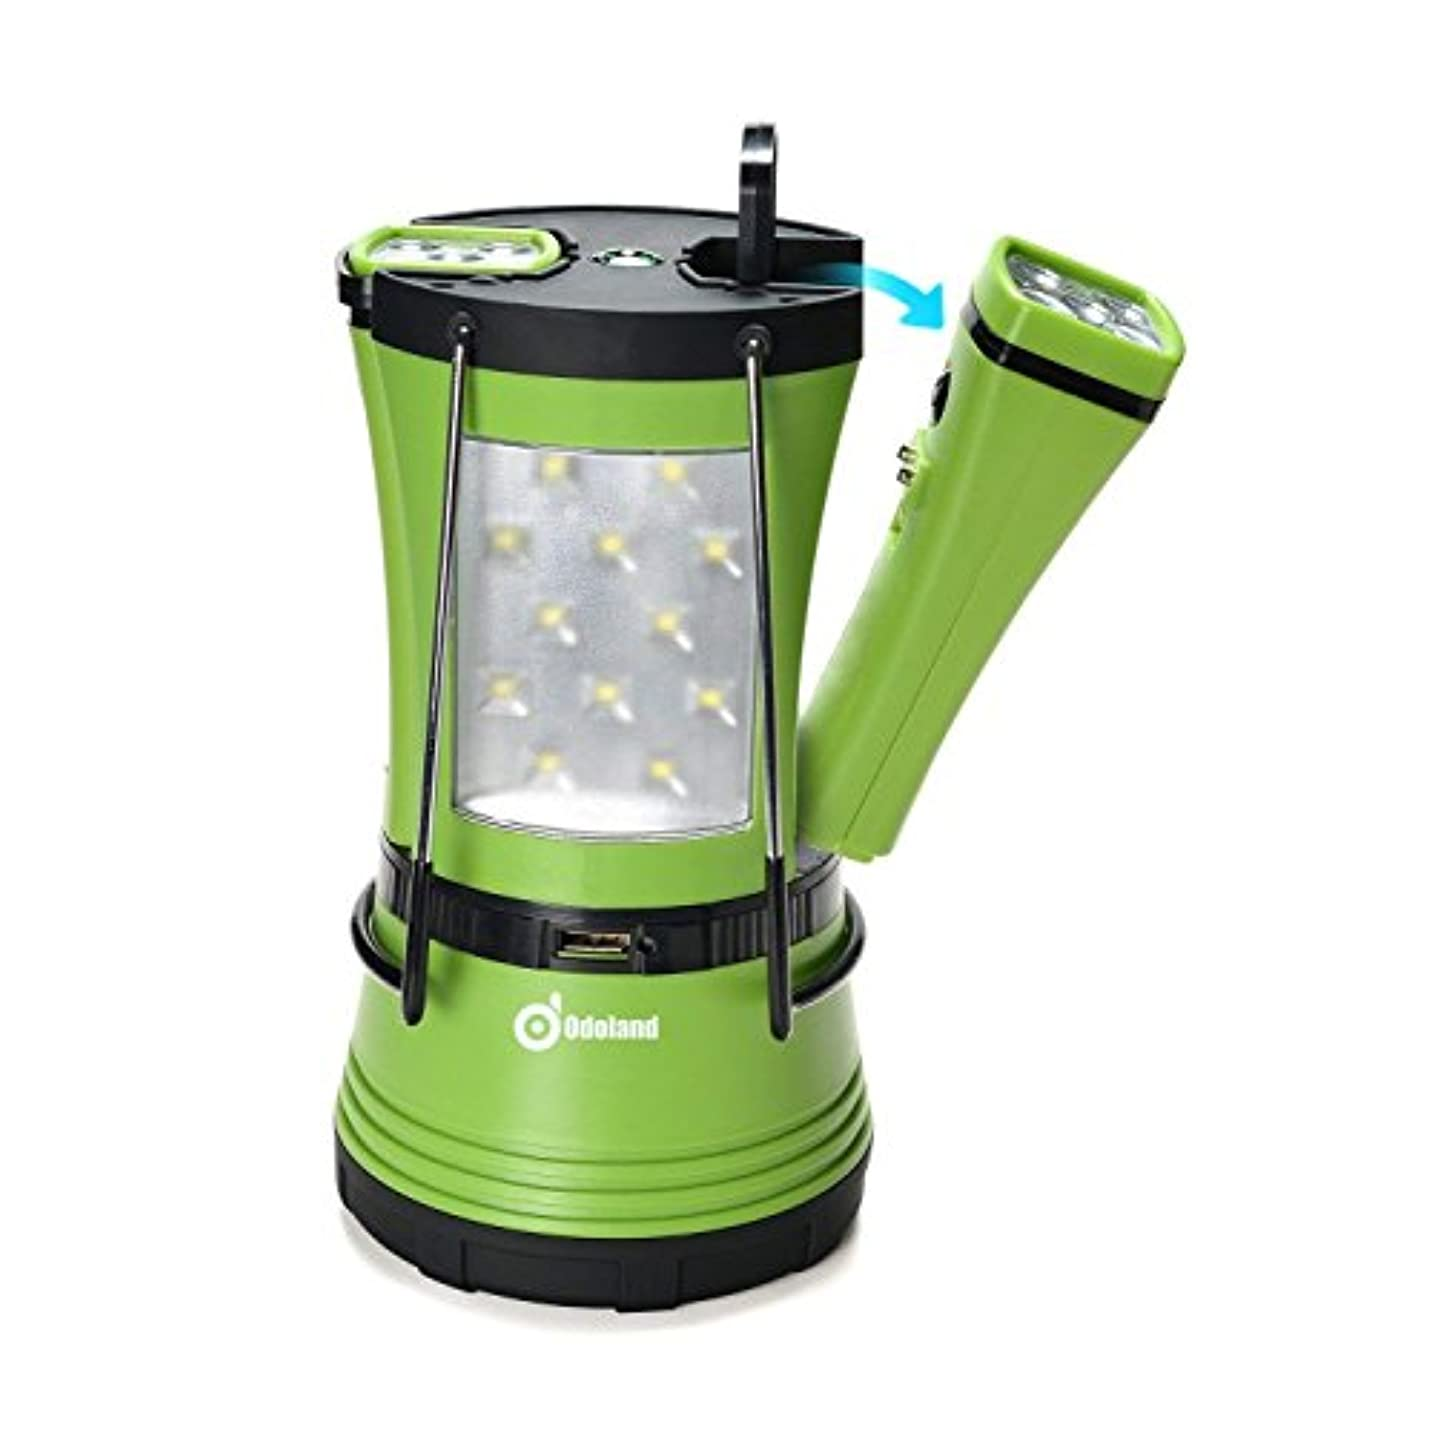 推測する残基周波数[(オドランド) Odoland ] [Odoland 600 Lumen LED Camping Lantern with 2 Detachable Flashlights, Camping Gear Equipment for Outdoor Hiking, Camping Supplies, Emergencies,] (並行輸入品)